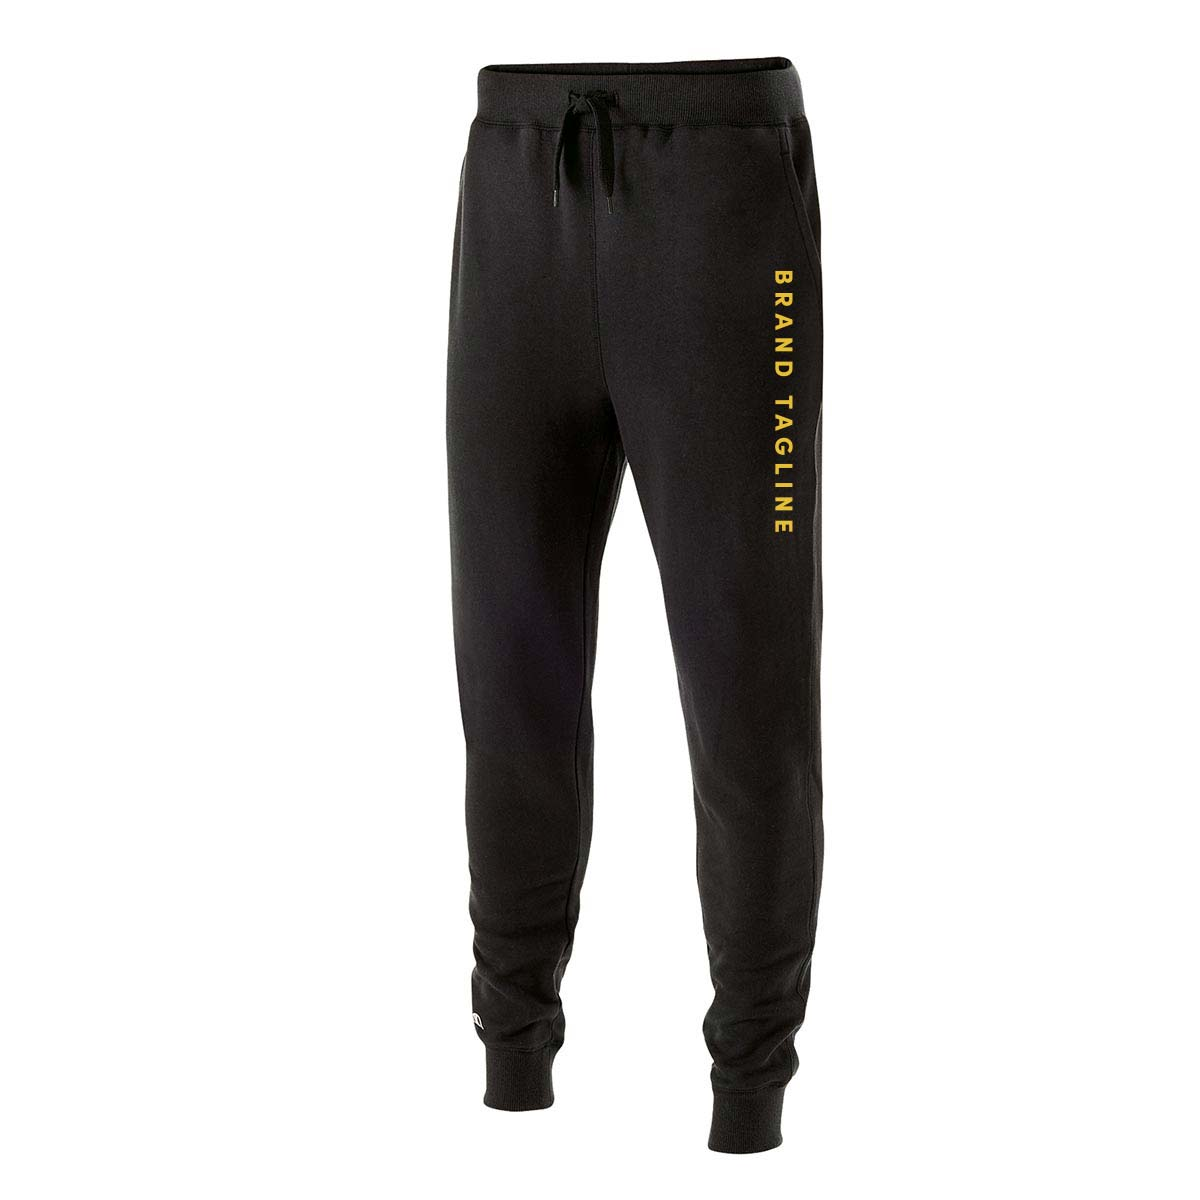 313731 kyle joggers one color imprint one location